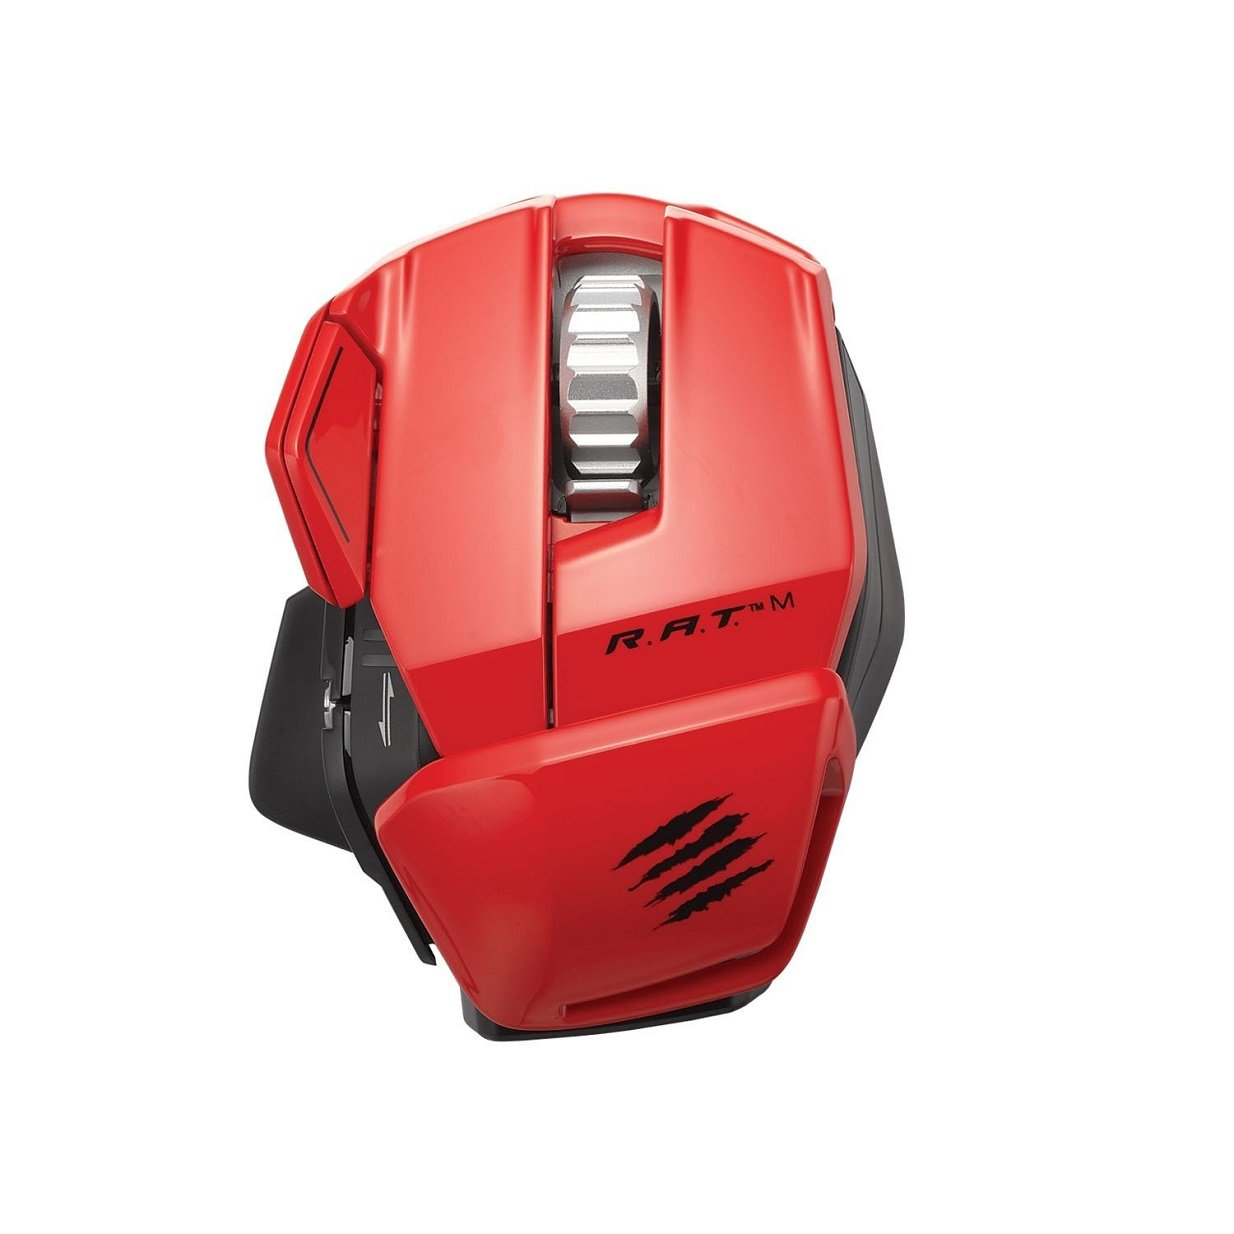 (Red) - Mad Catz R.A.T. M Wireless Mobile Gaming Mouse for PC, Mac and Mobile Devices - Red B00BEEFOVG